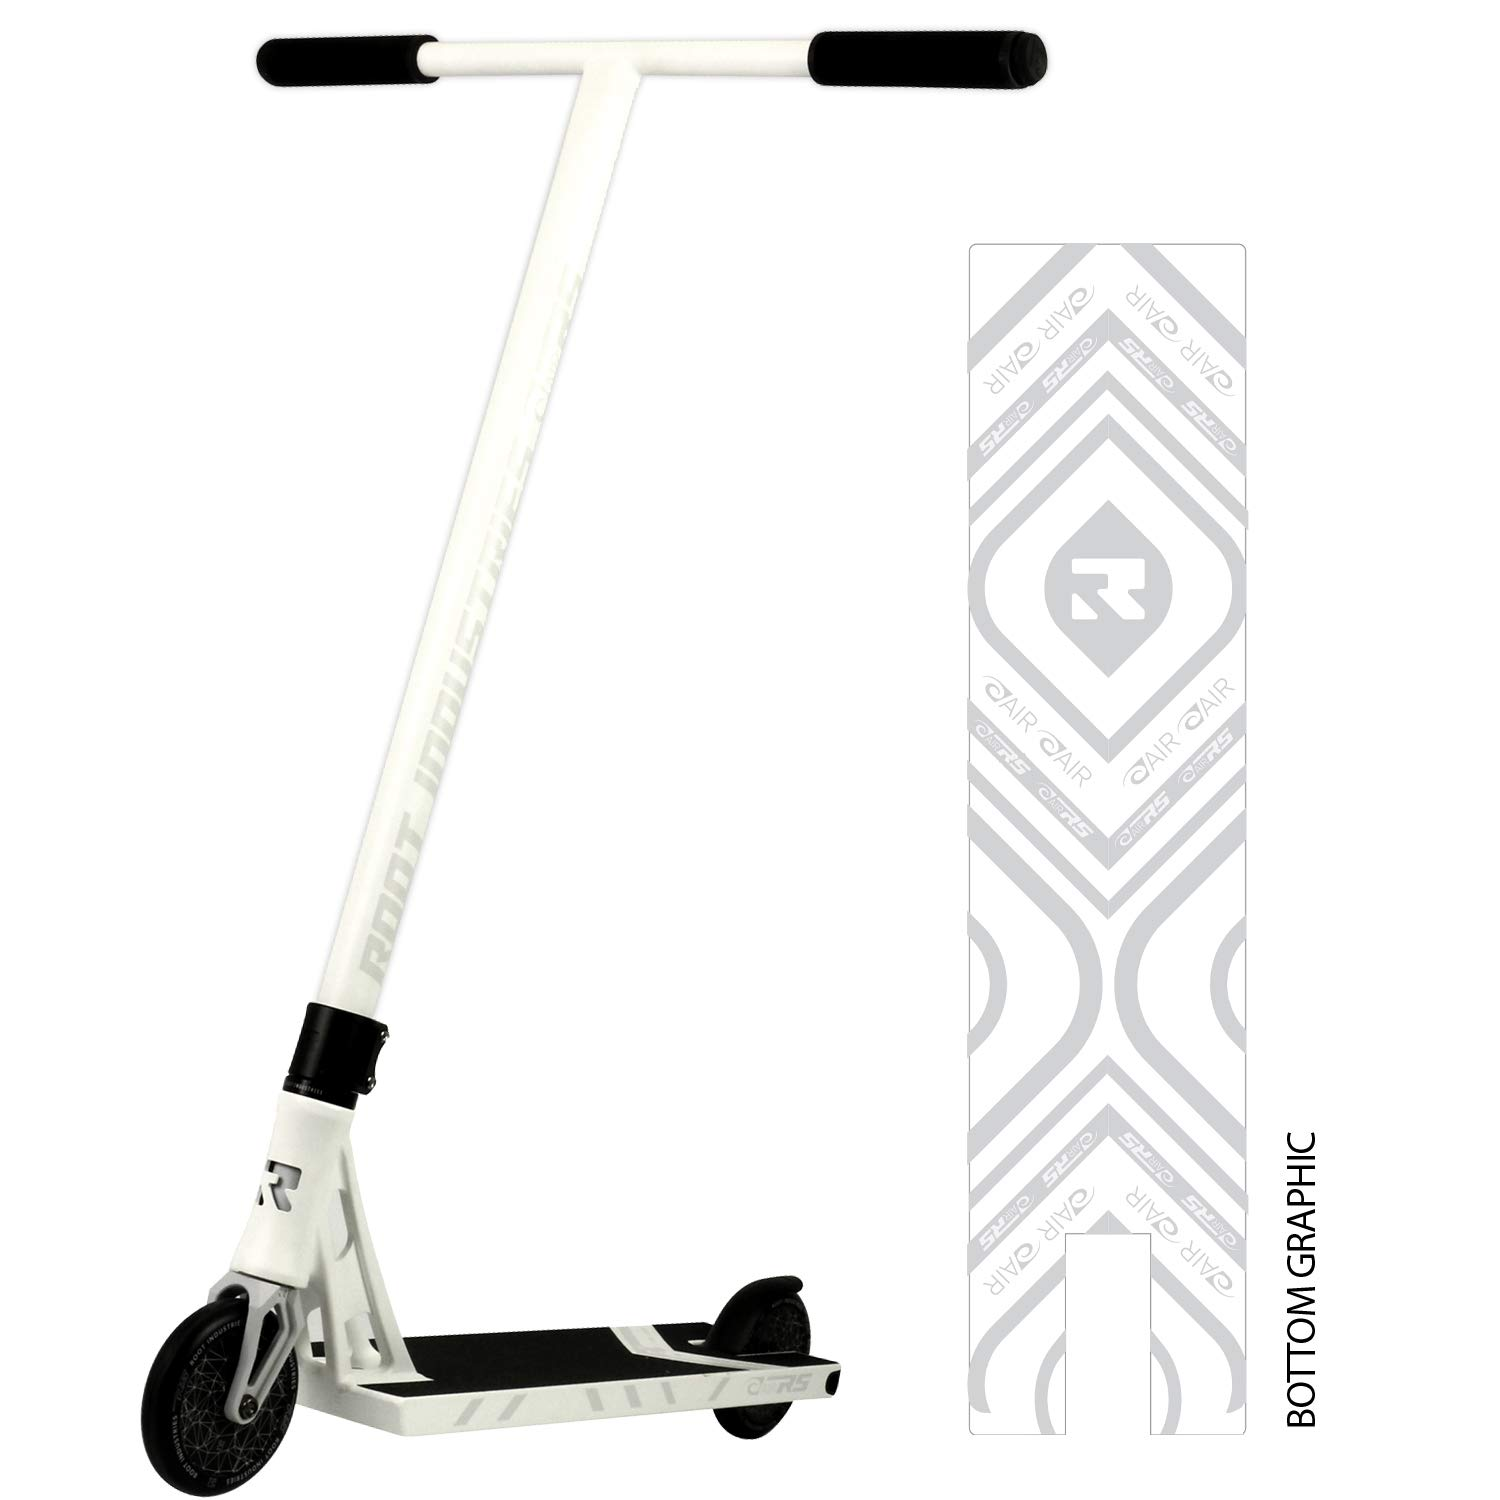 AIR RS Complete Scooter – Stunt Scooters – Professional Scooter for Older Riders – Pro Scooters for Kids Pro Scooters for Adults – Pro Scooter Deck, Pro Scooter Wheels – Ready to Ride Trick Scooter